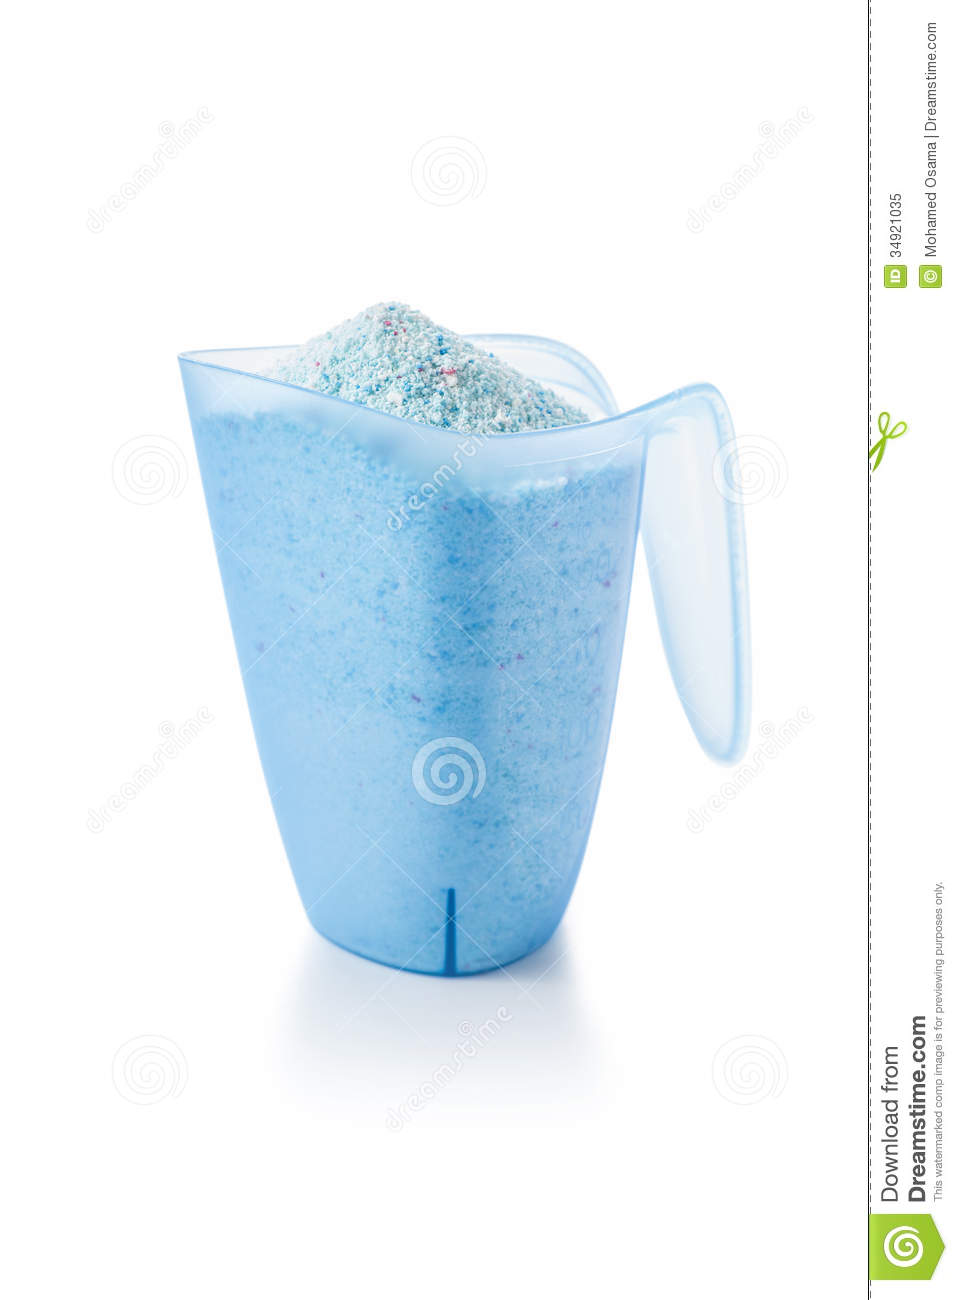 Washing Detergent Powder In A Measuring Cup Royalty Free